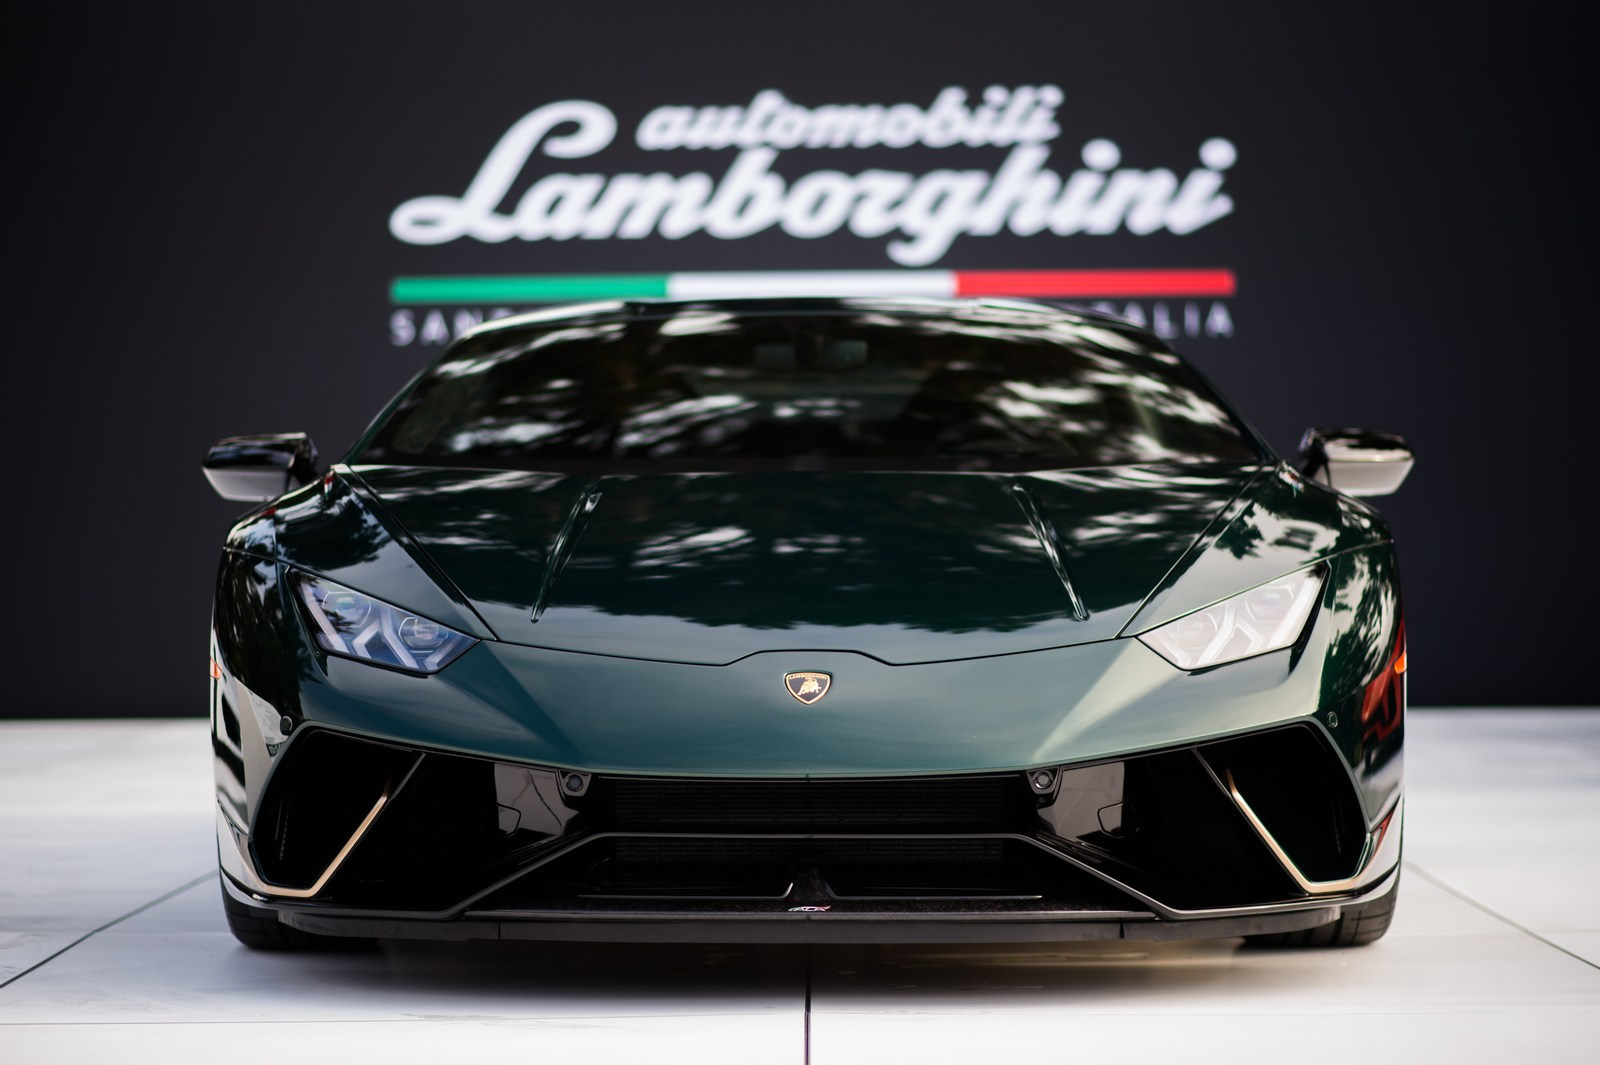 Lamborghini-Pebble-Beach-7